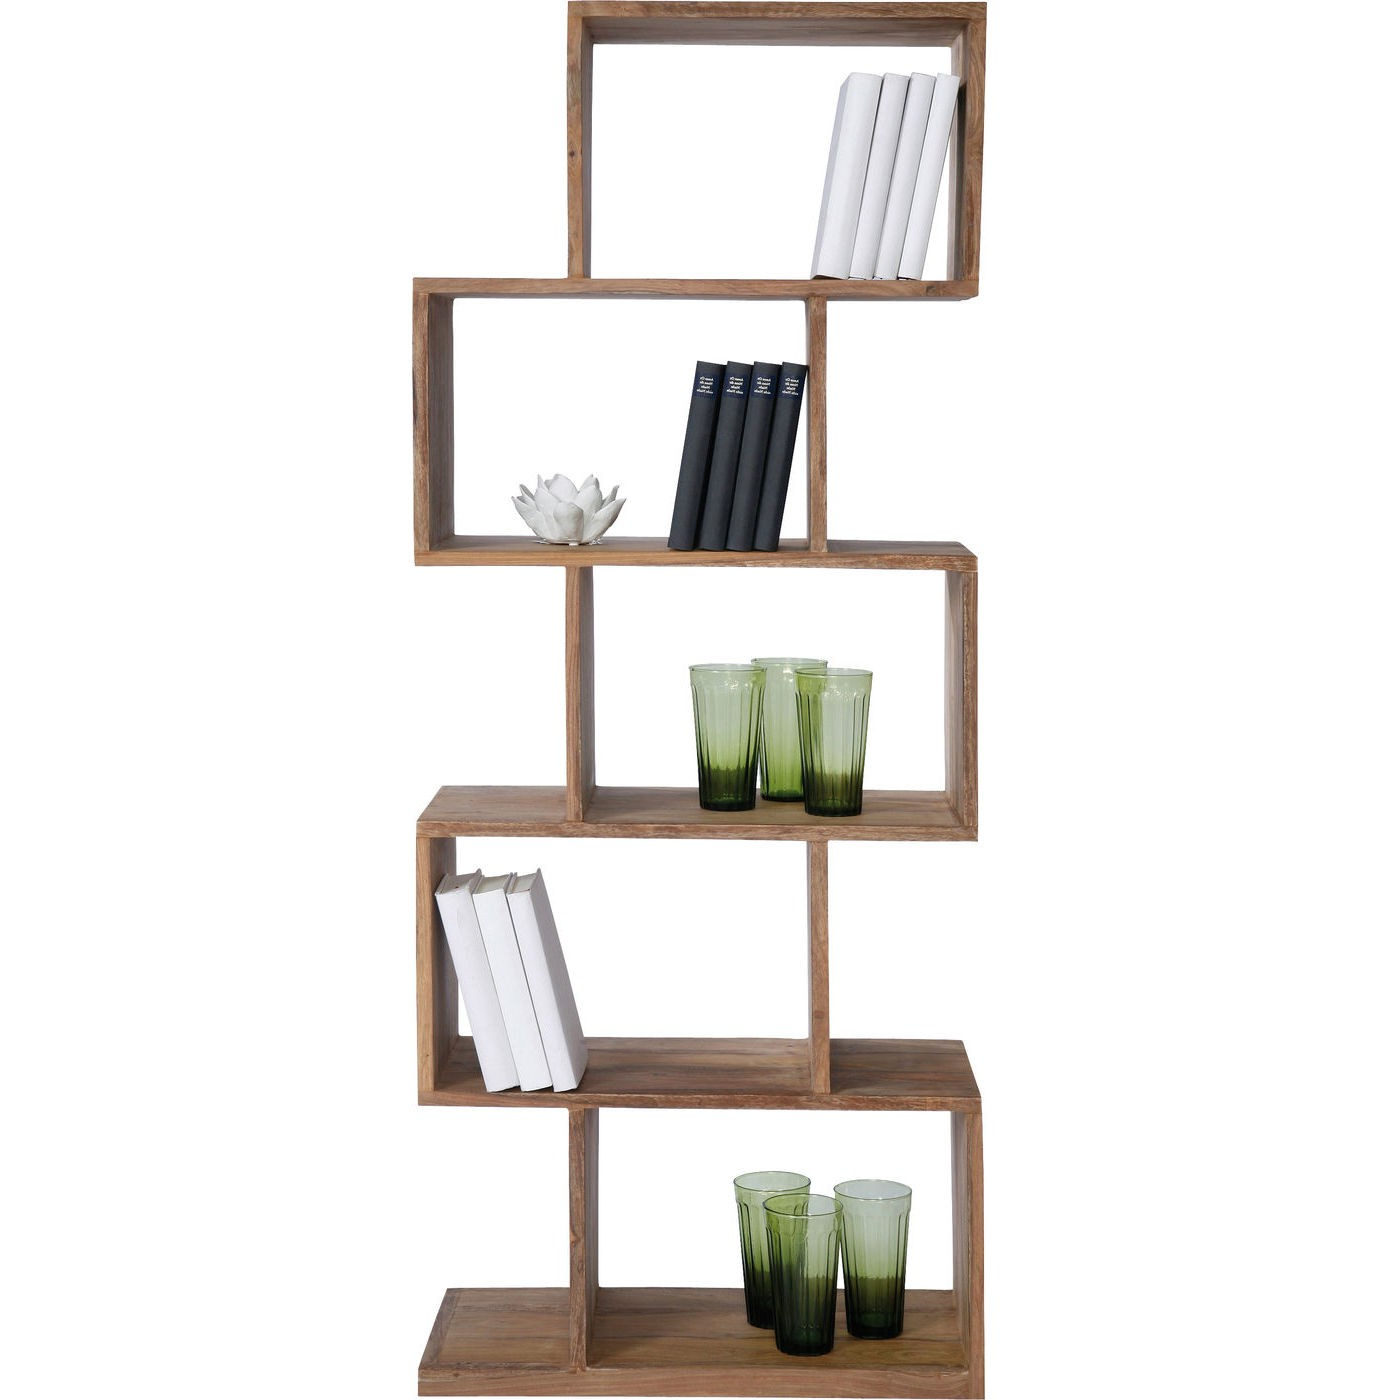 Authentico Regal Zick Zack 150 Throughout Widely Used Zack Standard Bookcases (View 18 of 20)